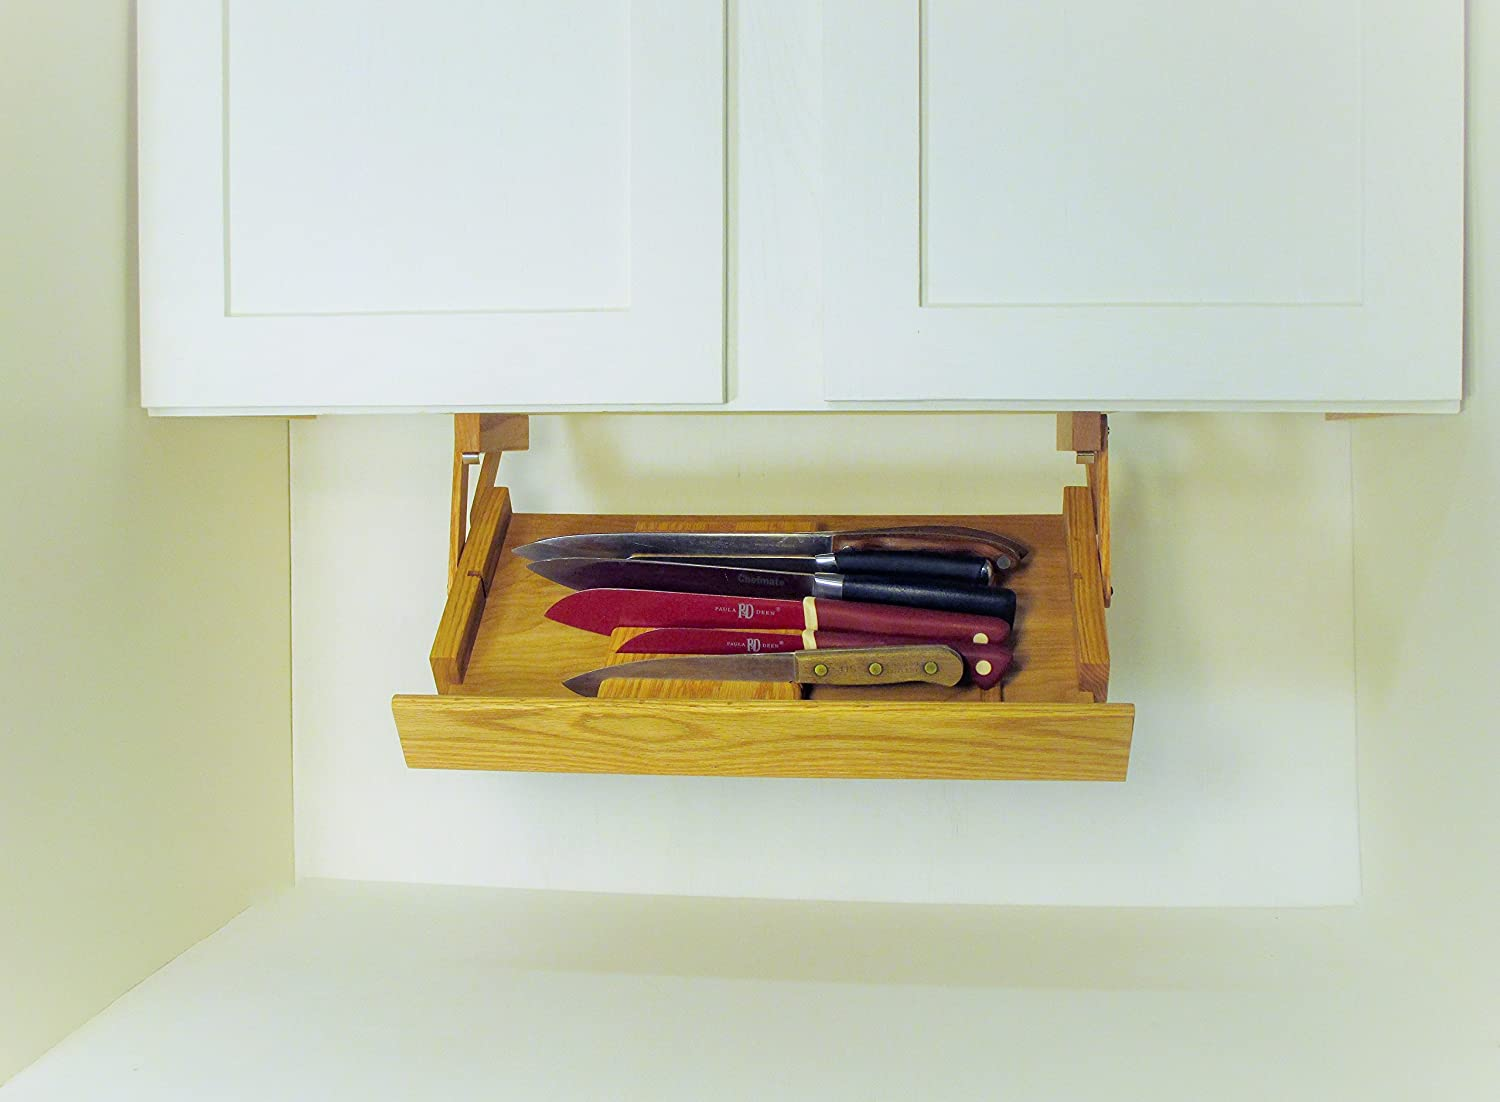 Amazon.com: Under Cabinet Mounted Knife Rack: Kitchen & Dining